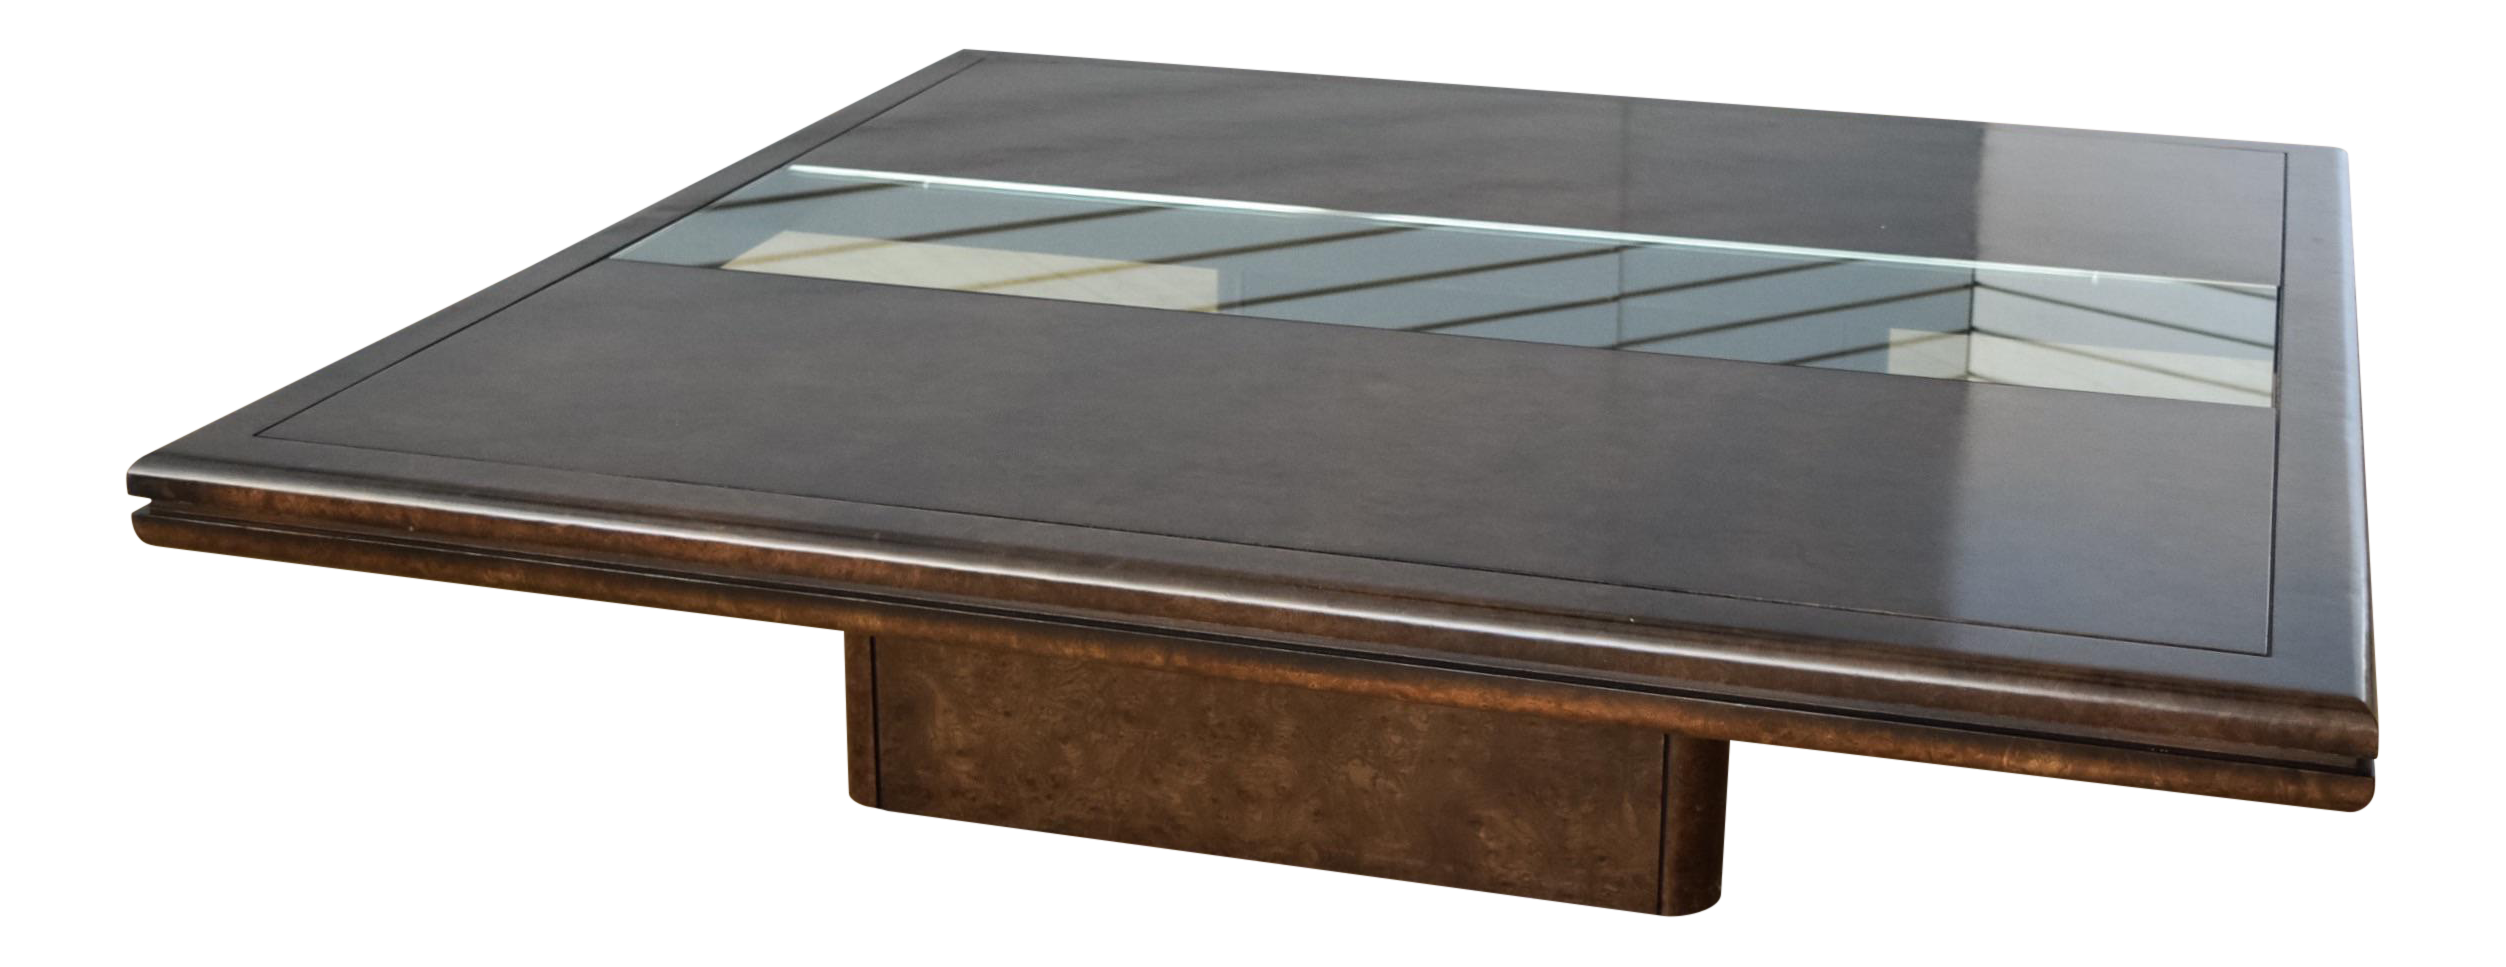 Floating Laquered Burlwood & Glass Coffee Table